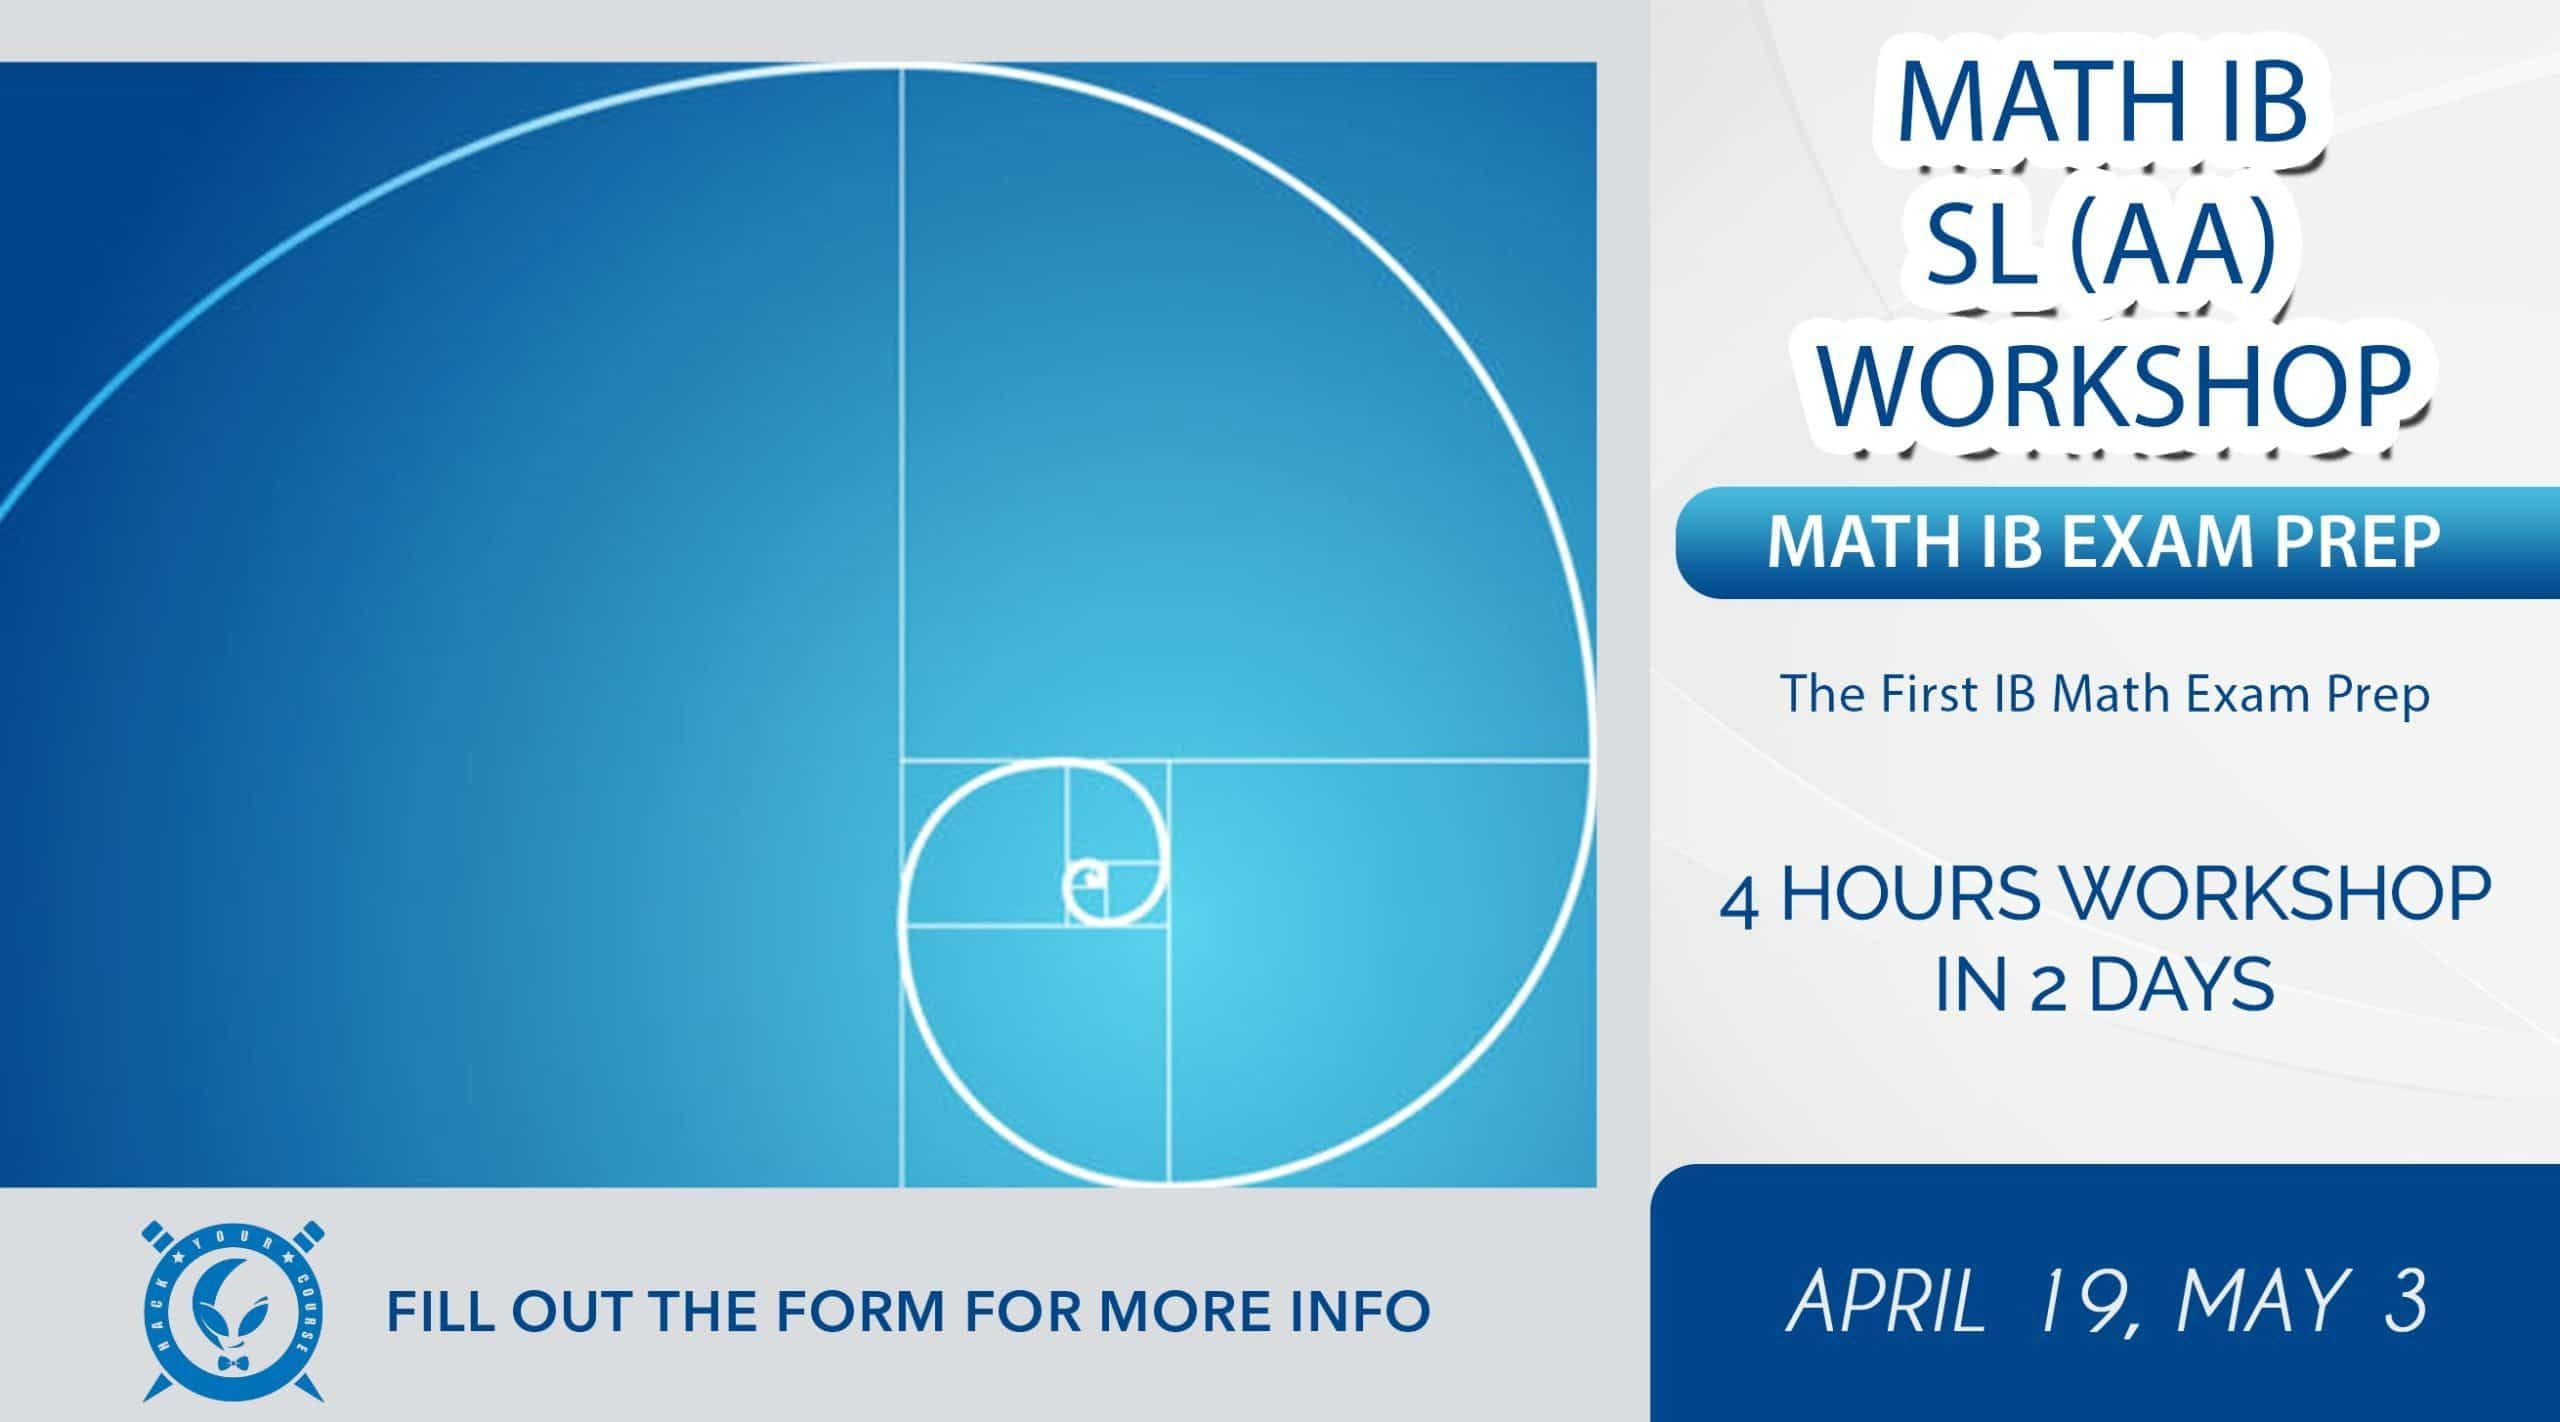 IB MATH EXAM PREP WITH HACK YOUR COURSE IB TUTORING SERVICE IN GREATER VANCOUVER AND TORONTO